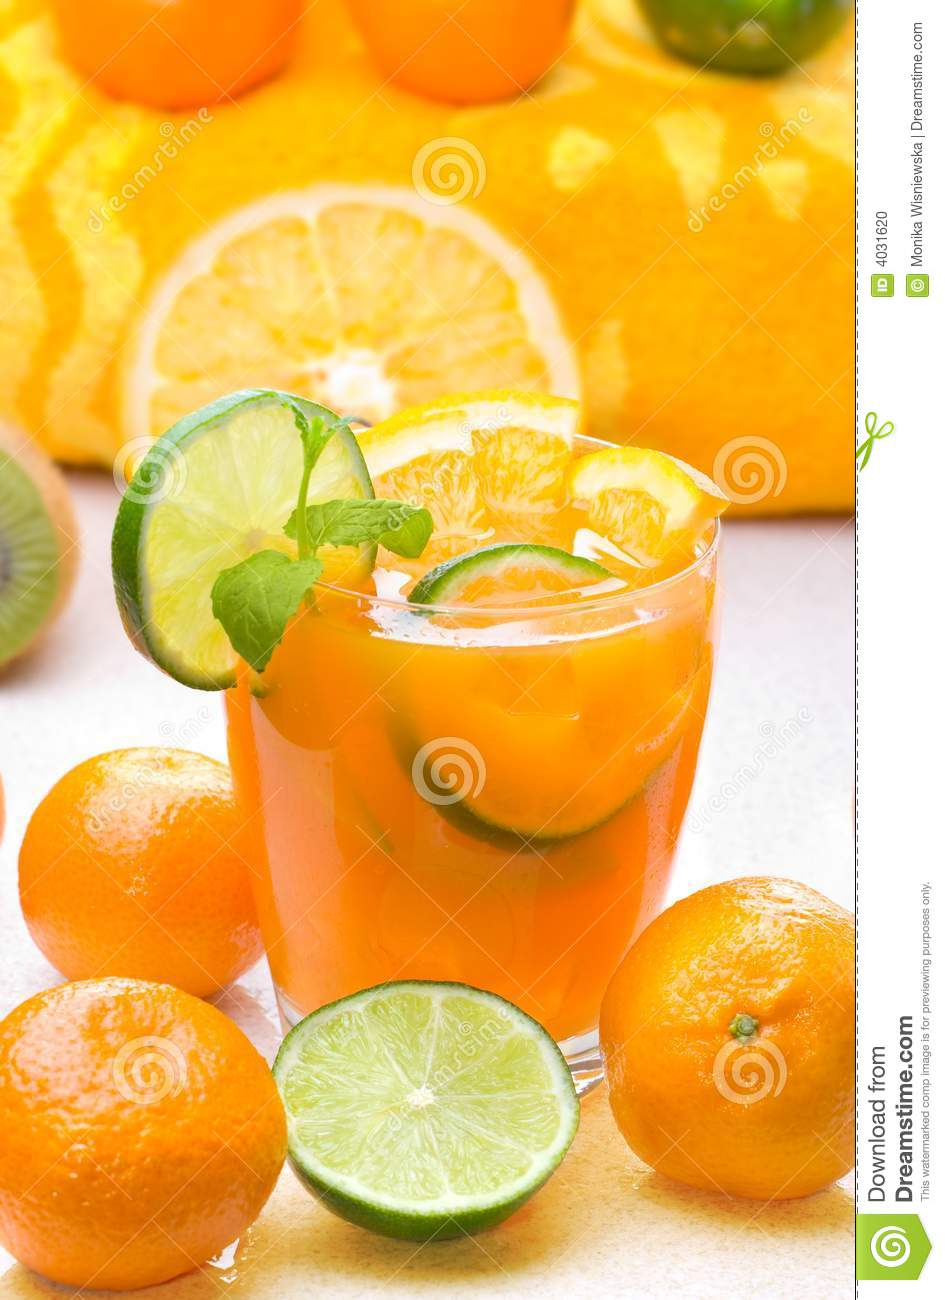 Citrus Drink Stock Photo - Image: 4031620